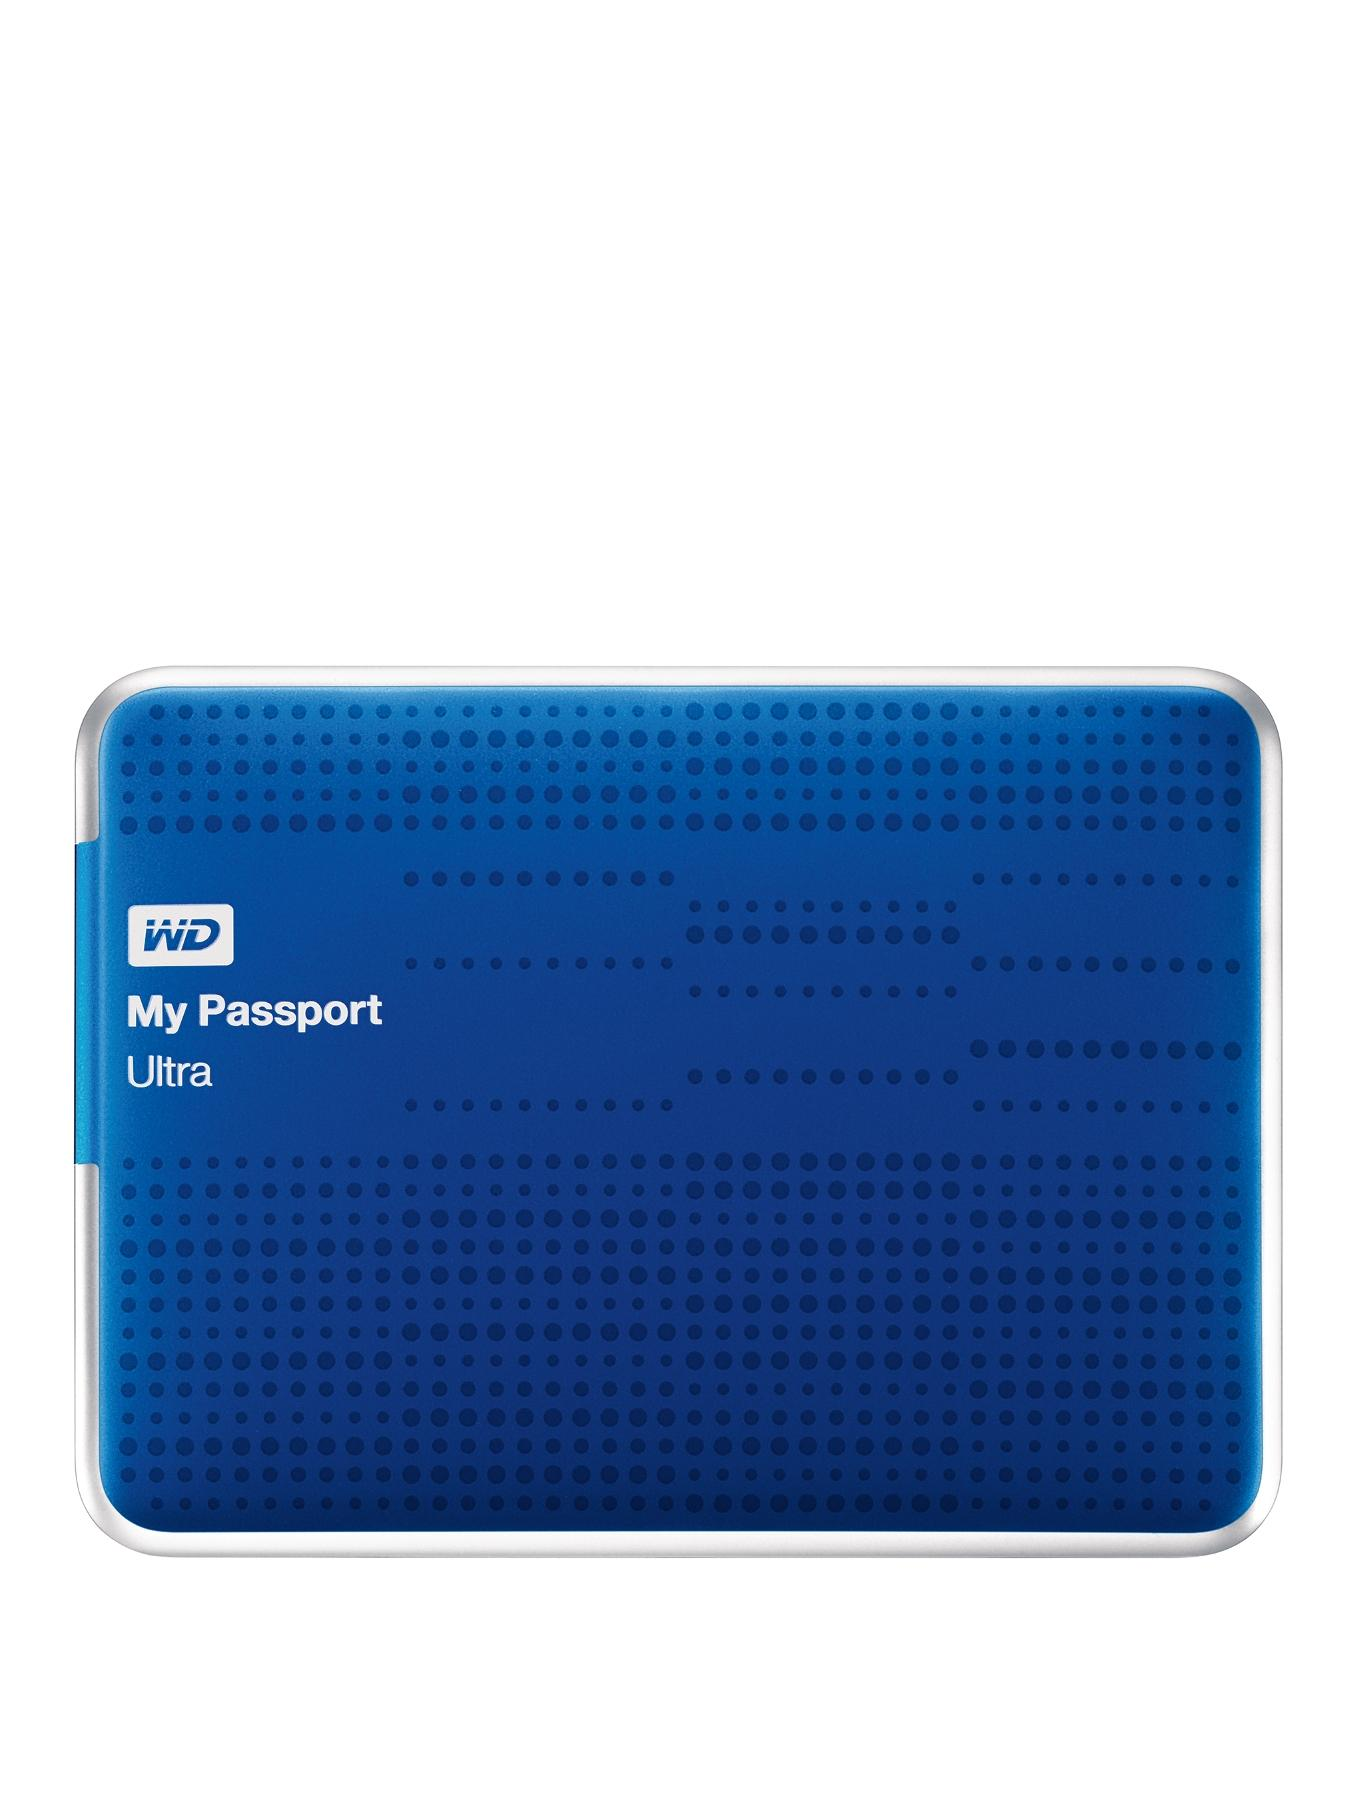 2Tb My Passport Ultra Portable Hard Drive - Blue